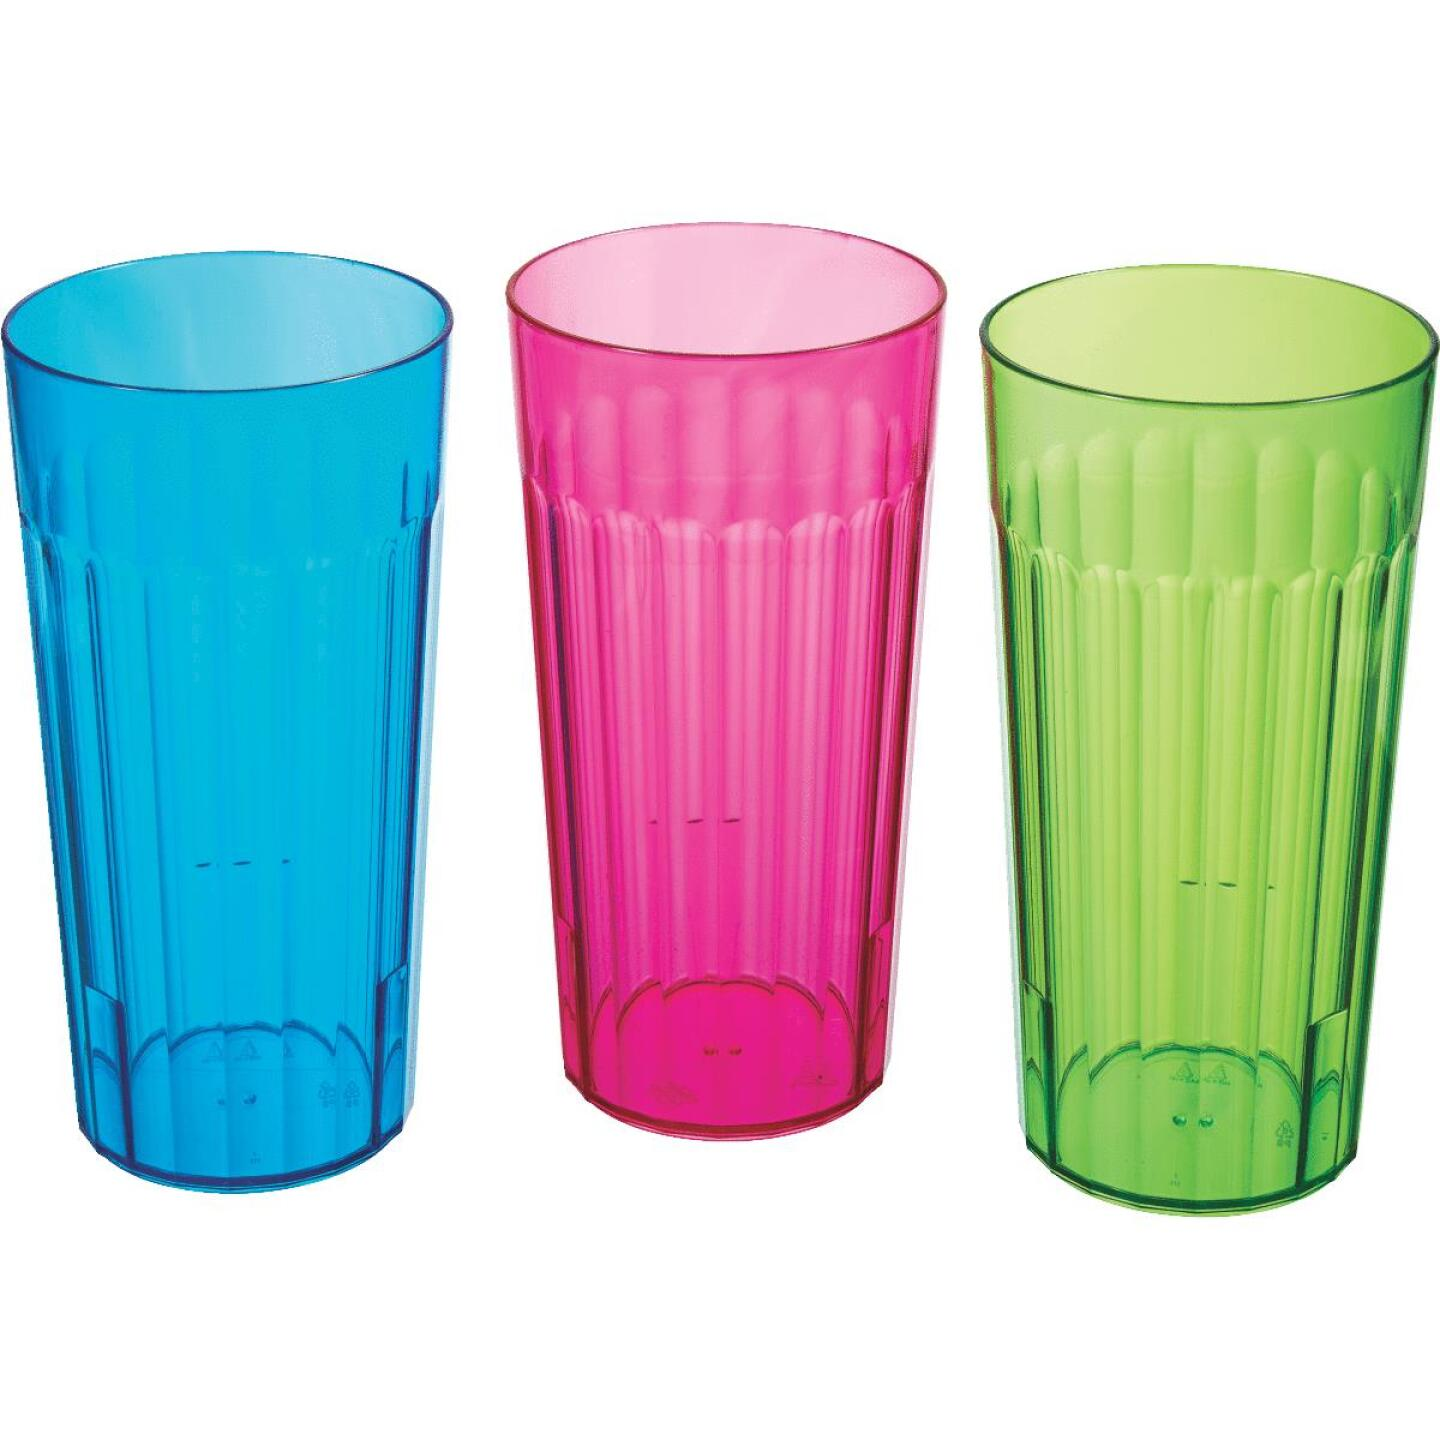 Arrow 30 Oz. Plastic Tumbler Image 1